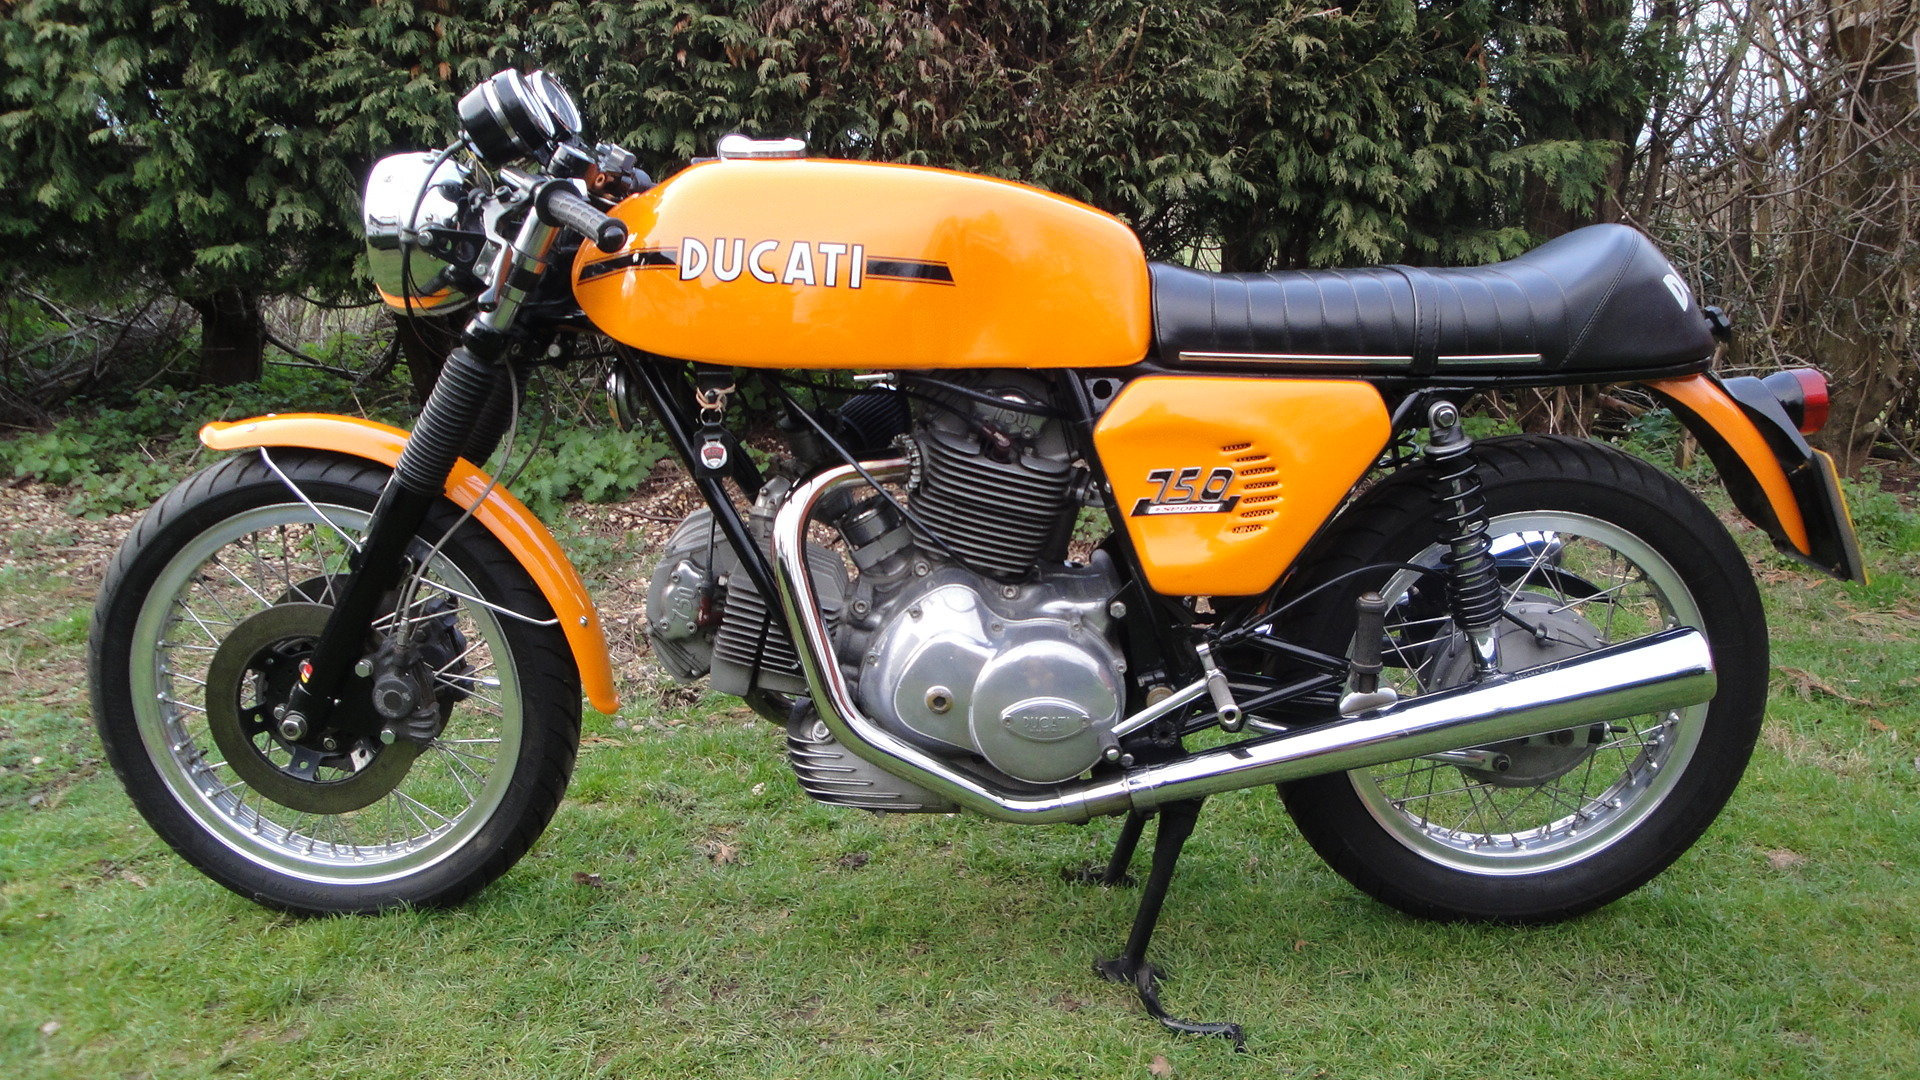 1975 DUCATI 750 SPORT 1 PREVIOUS OWNER. For Sale (picture 2 of 6)